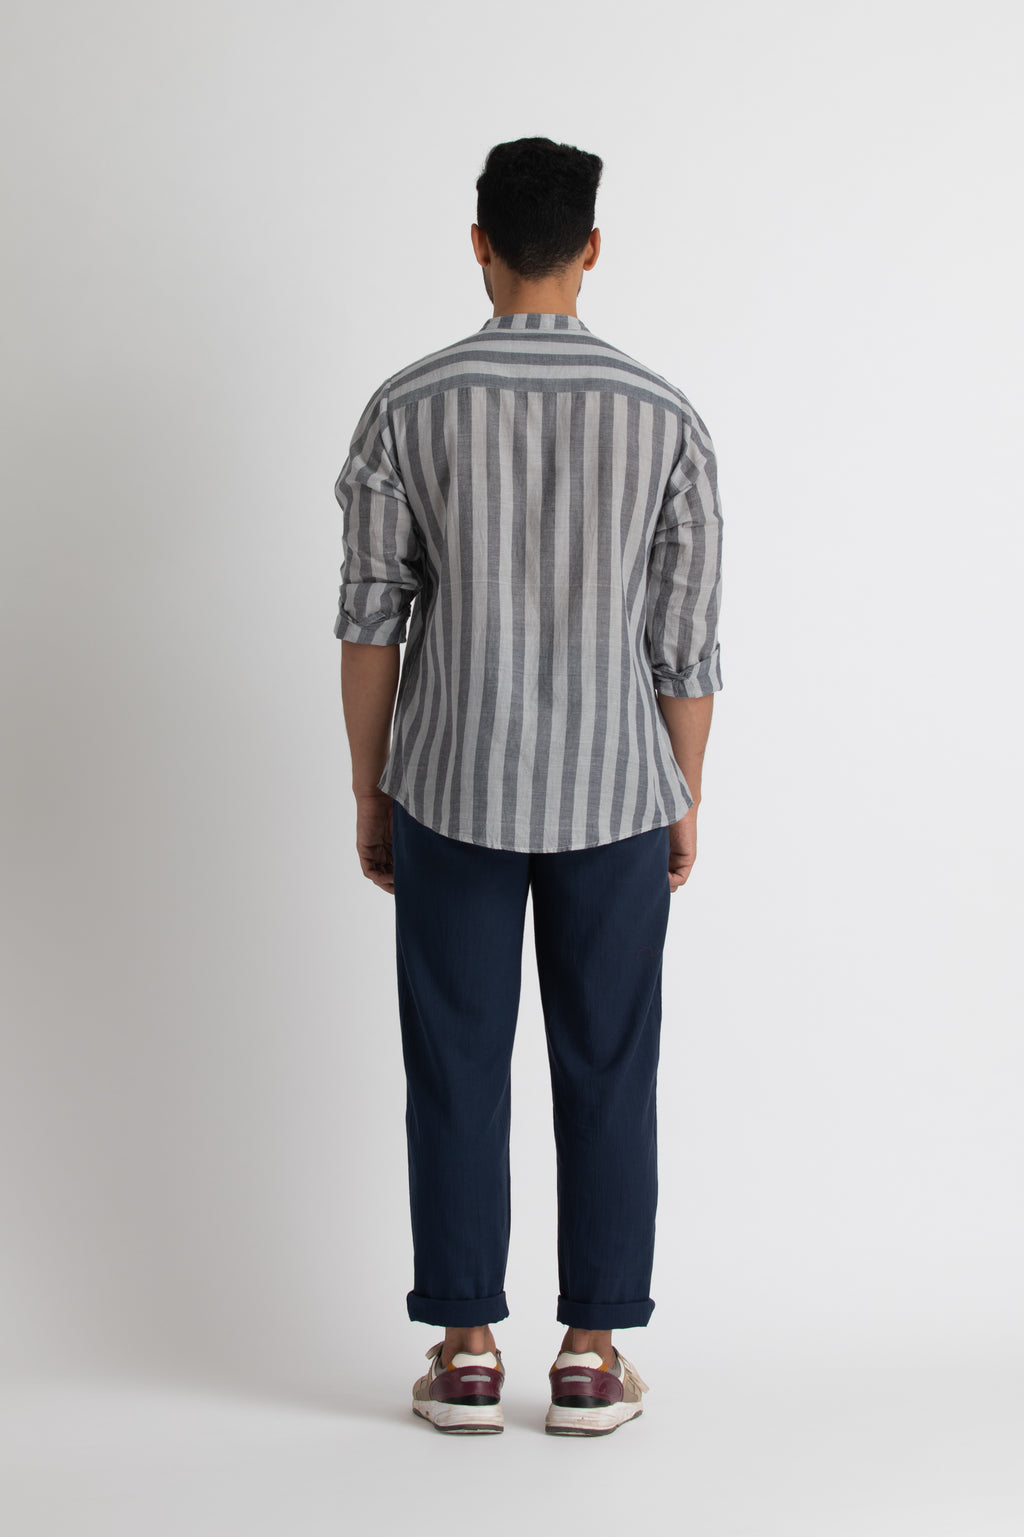 Band Collar Shirt Co-ord- Navy/Grey stripe